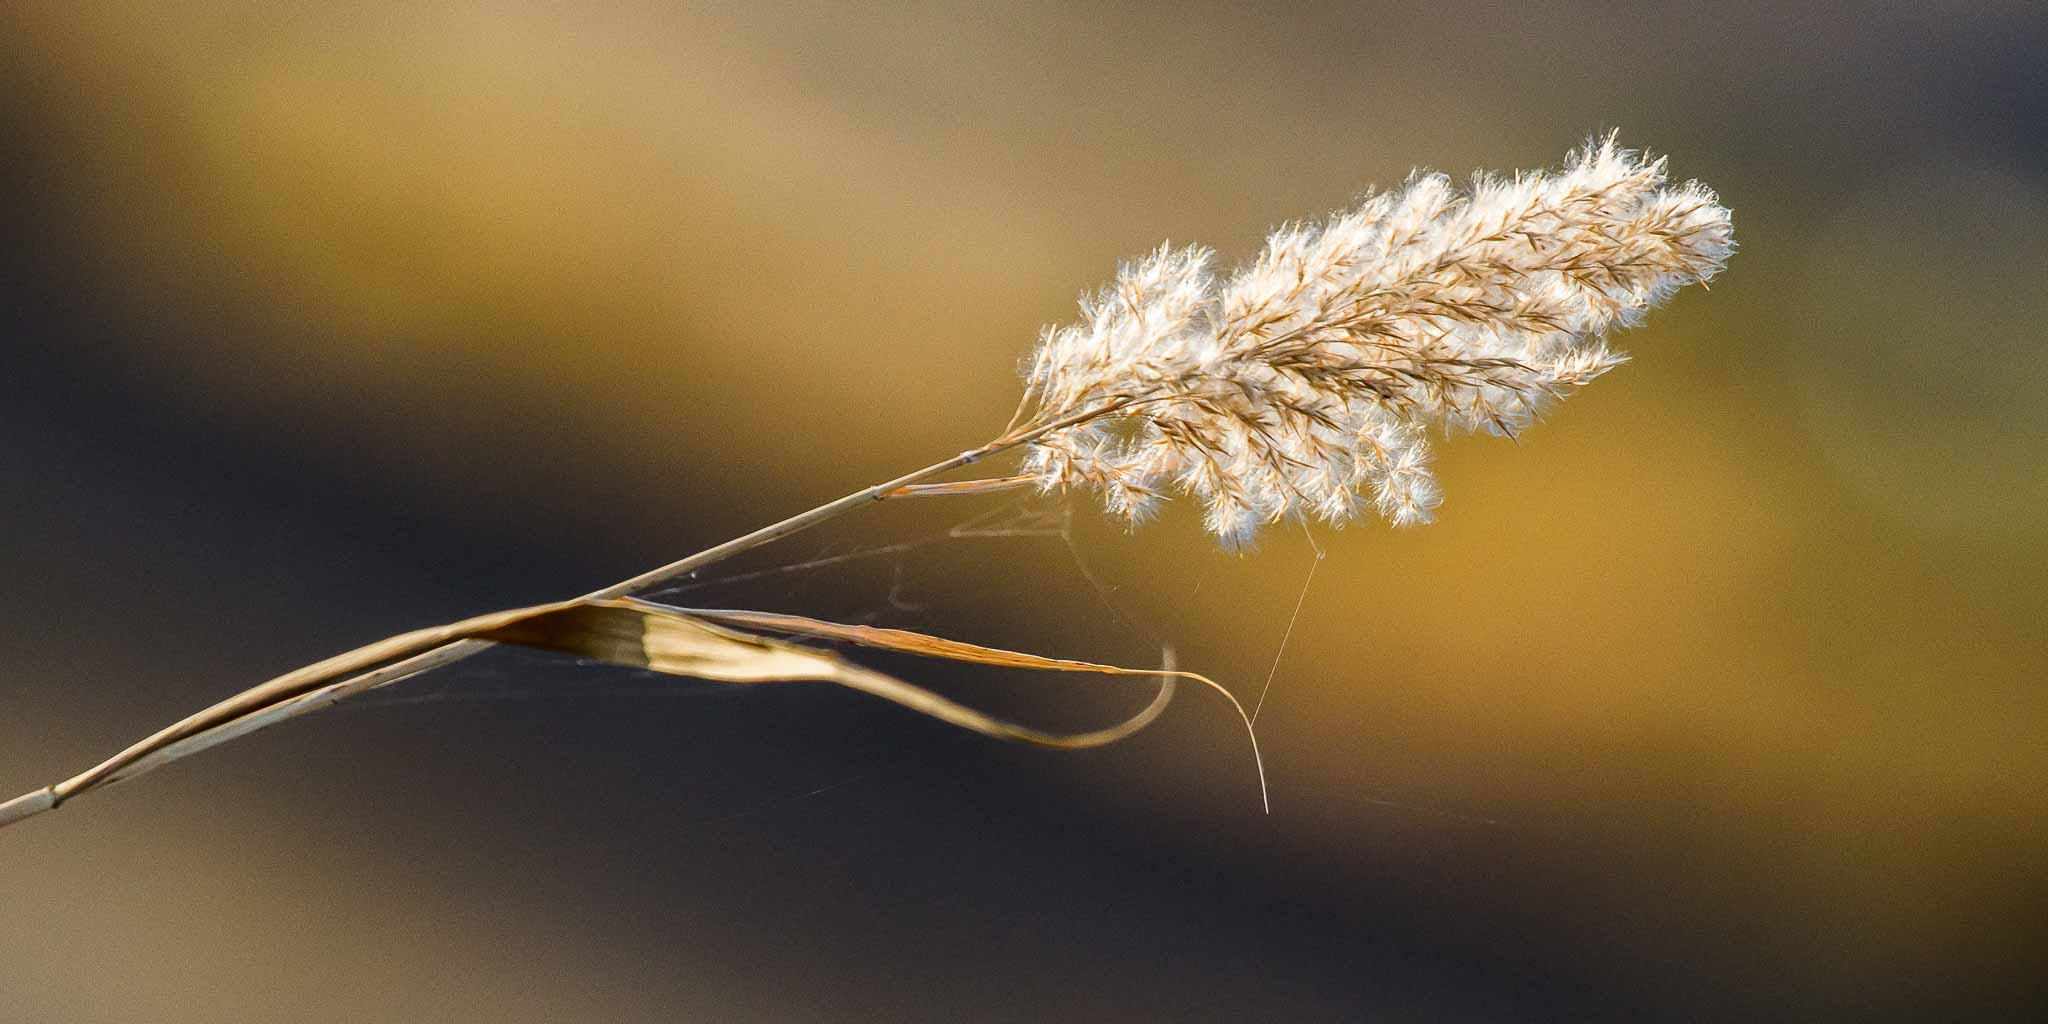 image of dried marsh grass seed head